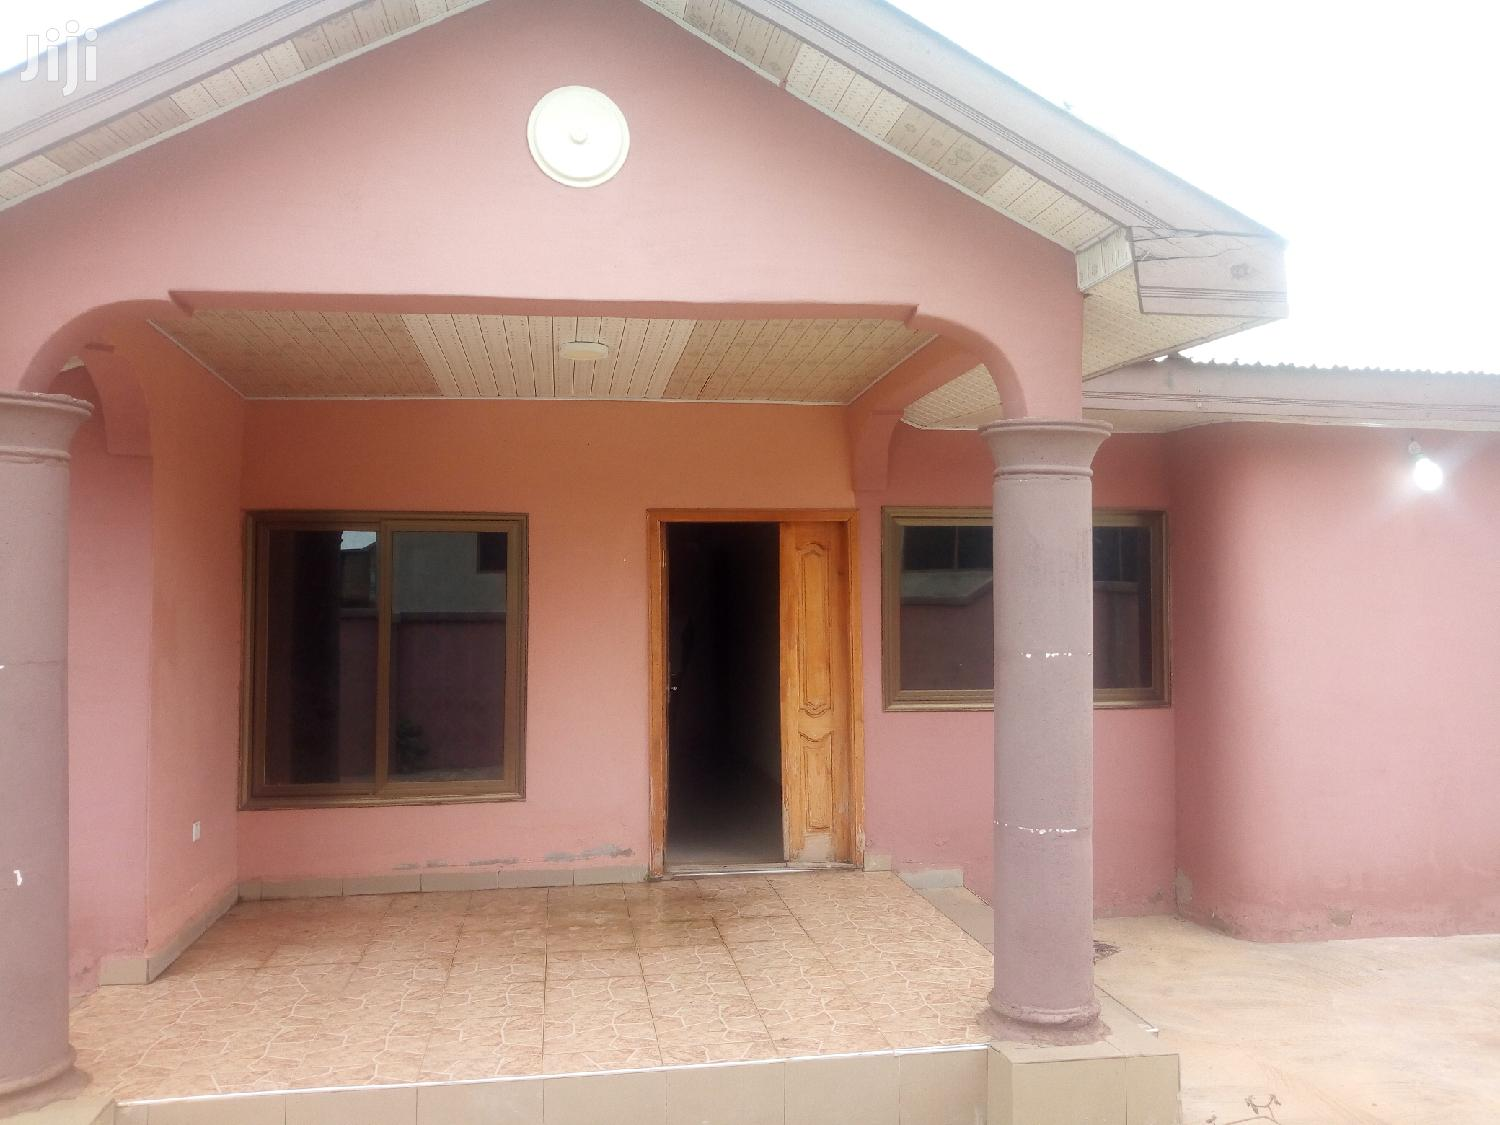 2bedrooms Apartment For Rent | Houses & Apartments For Rent for sale in Sunyani Municipal, Brong Ahafo, Ghana